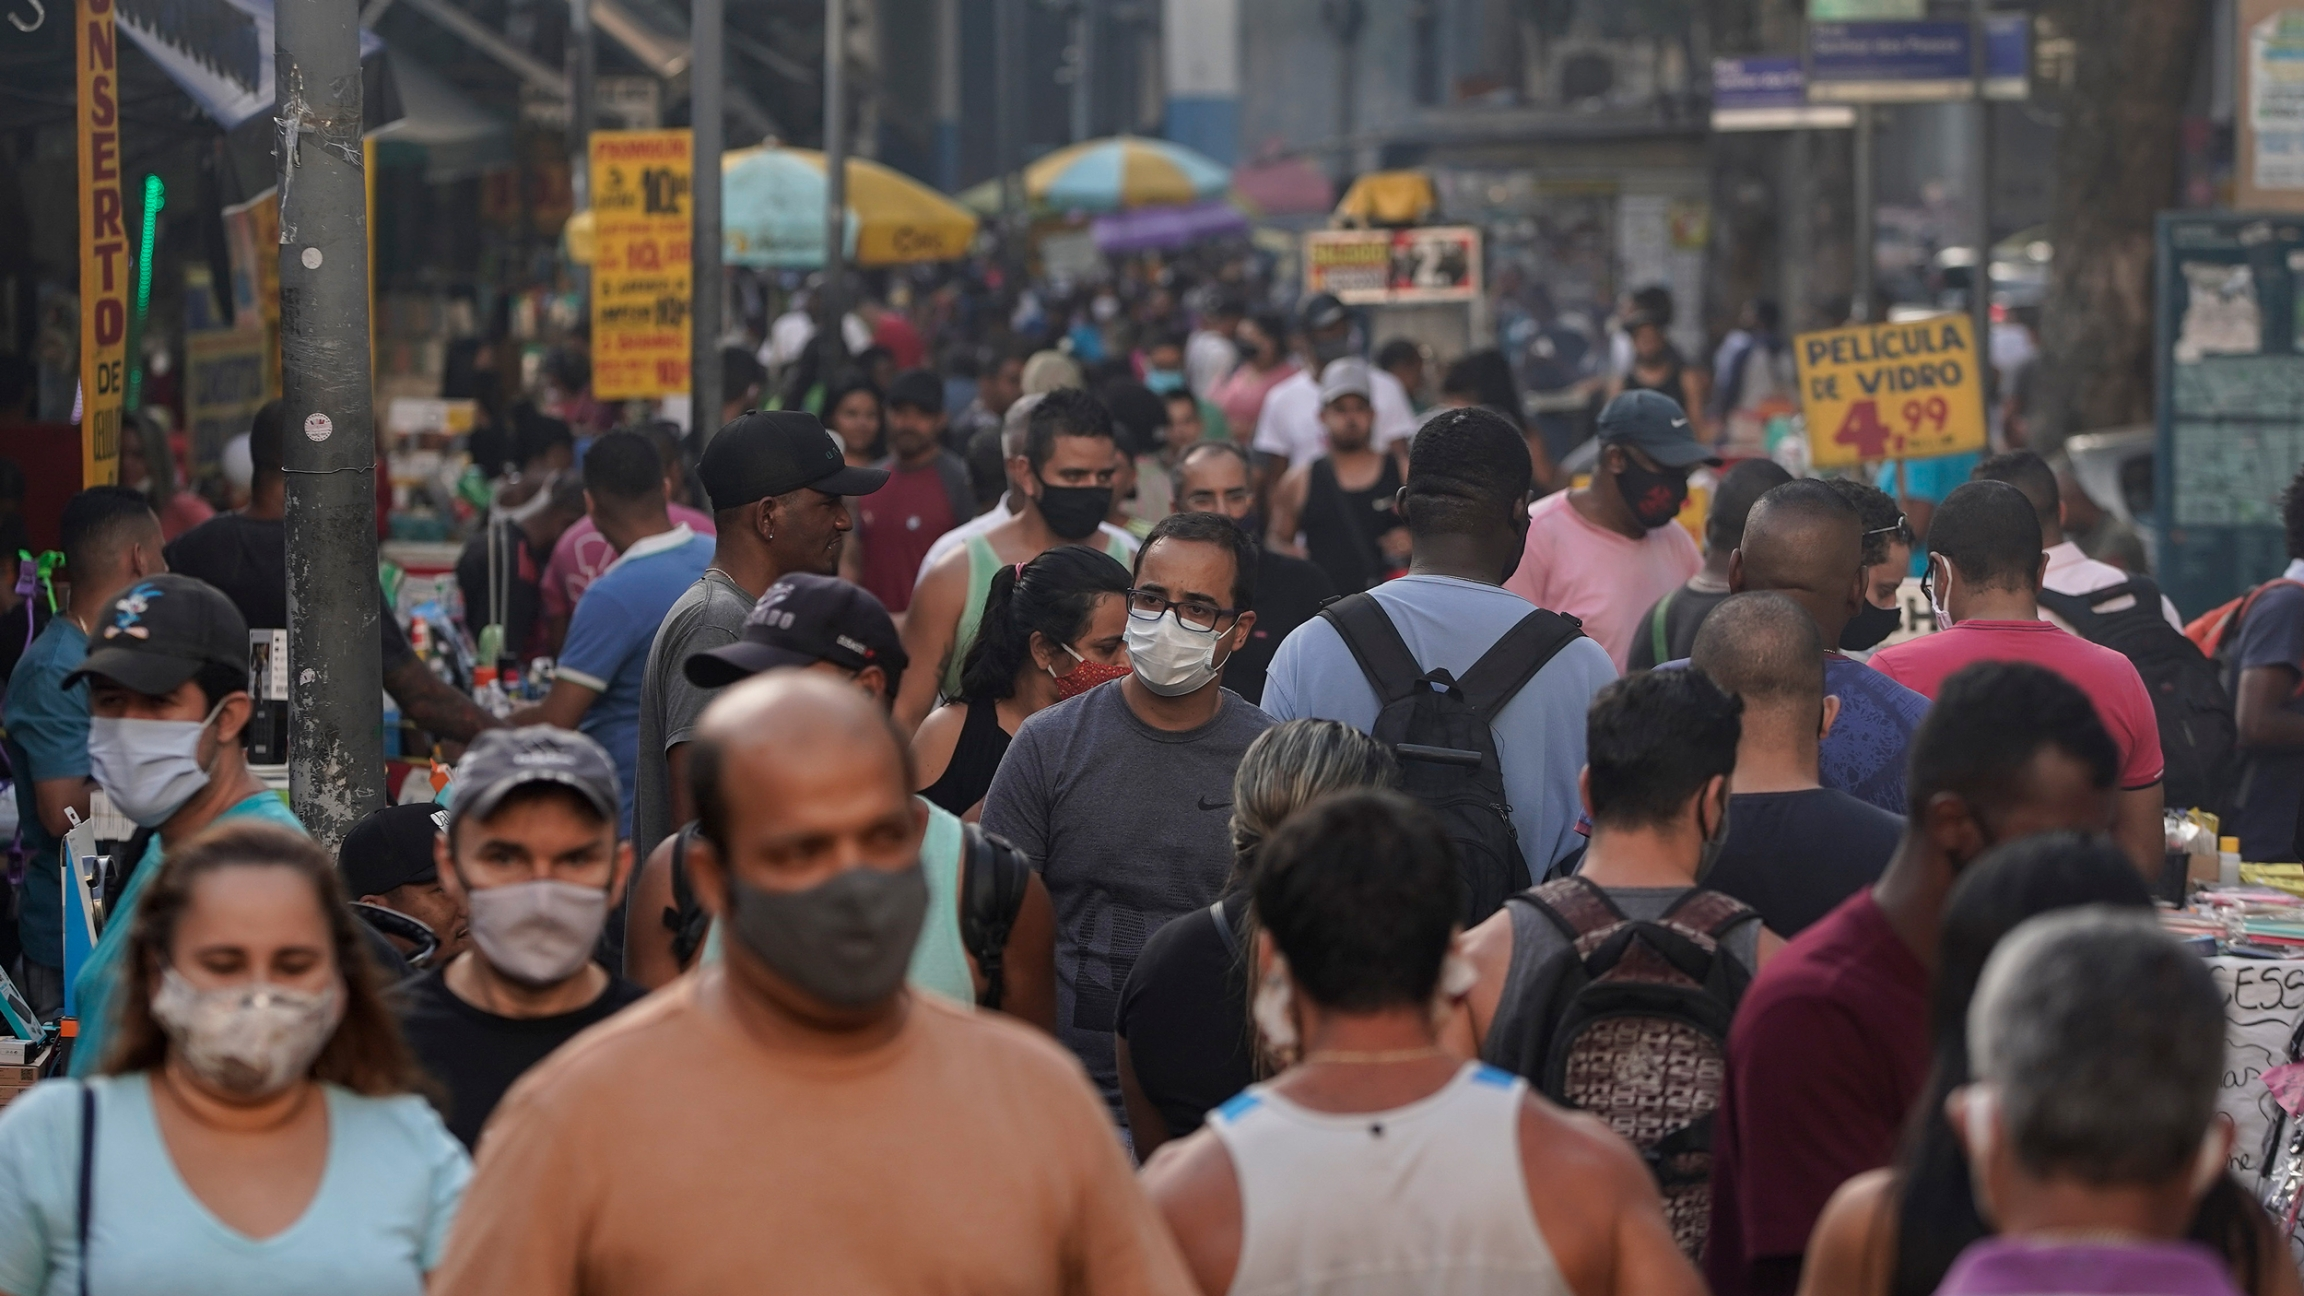 A crowded street is shown with some people wearing face masks.